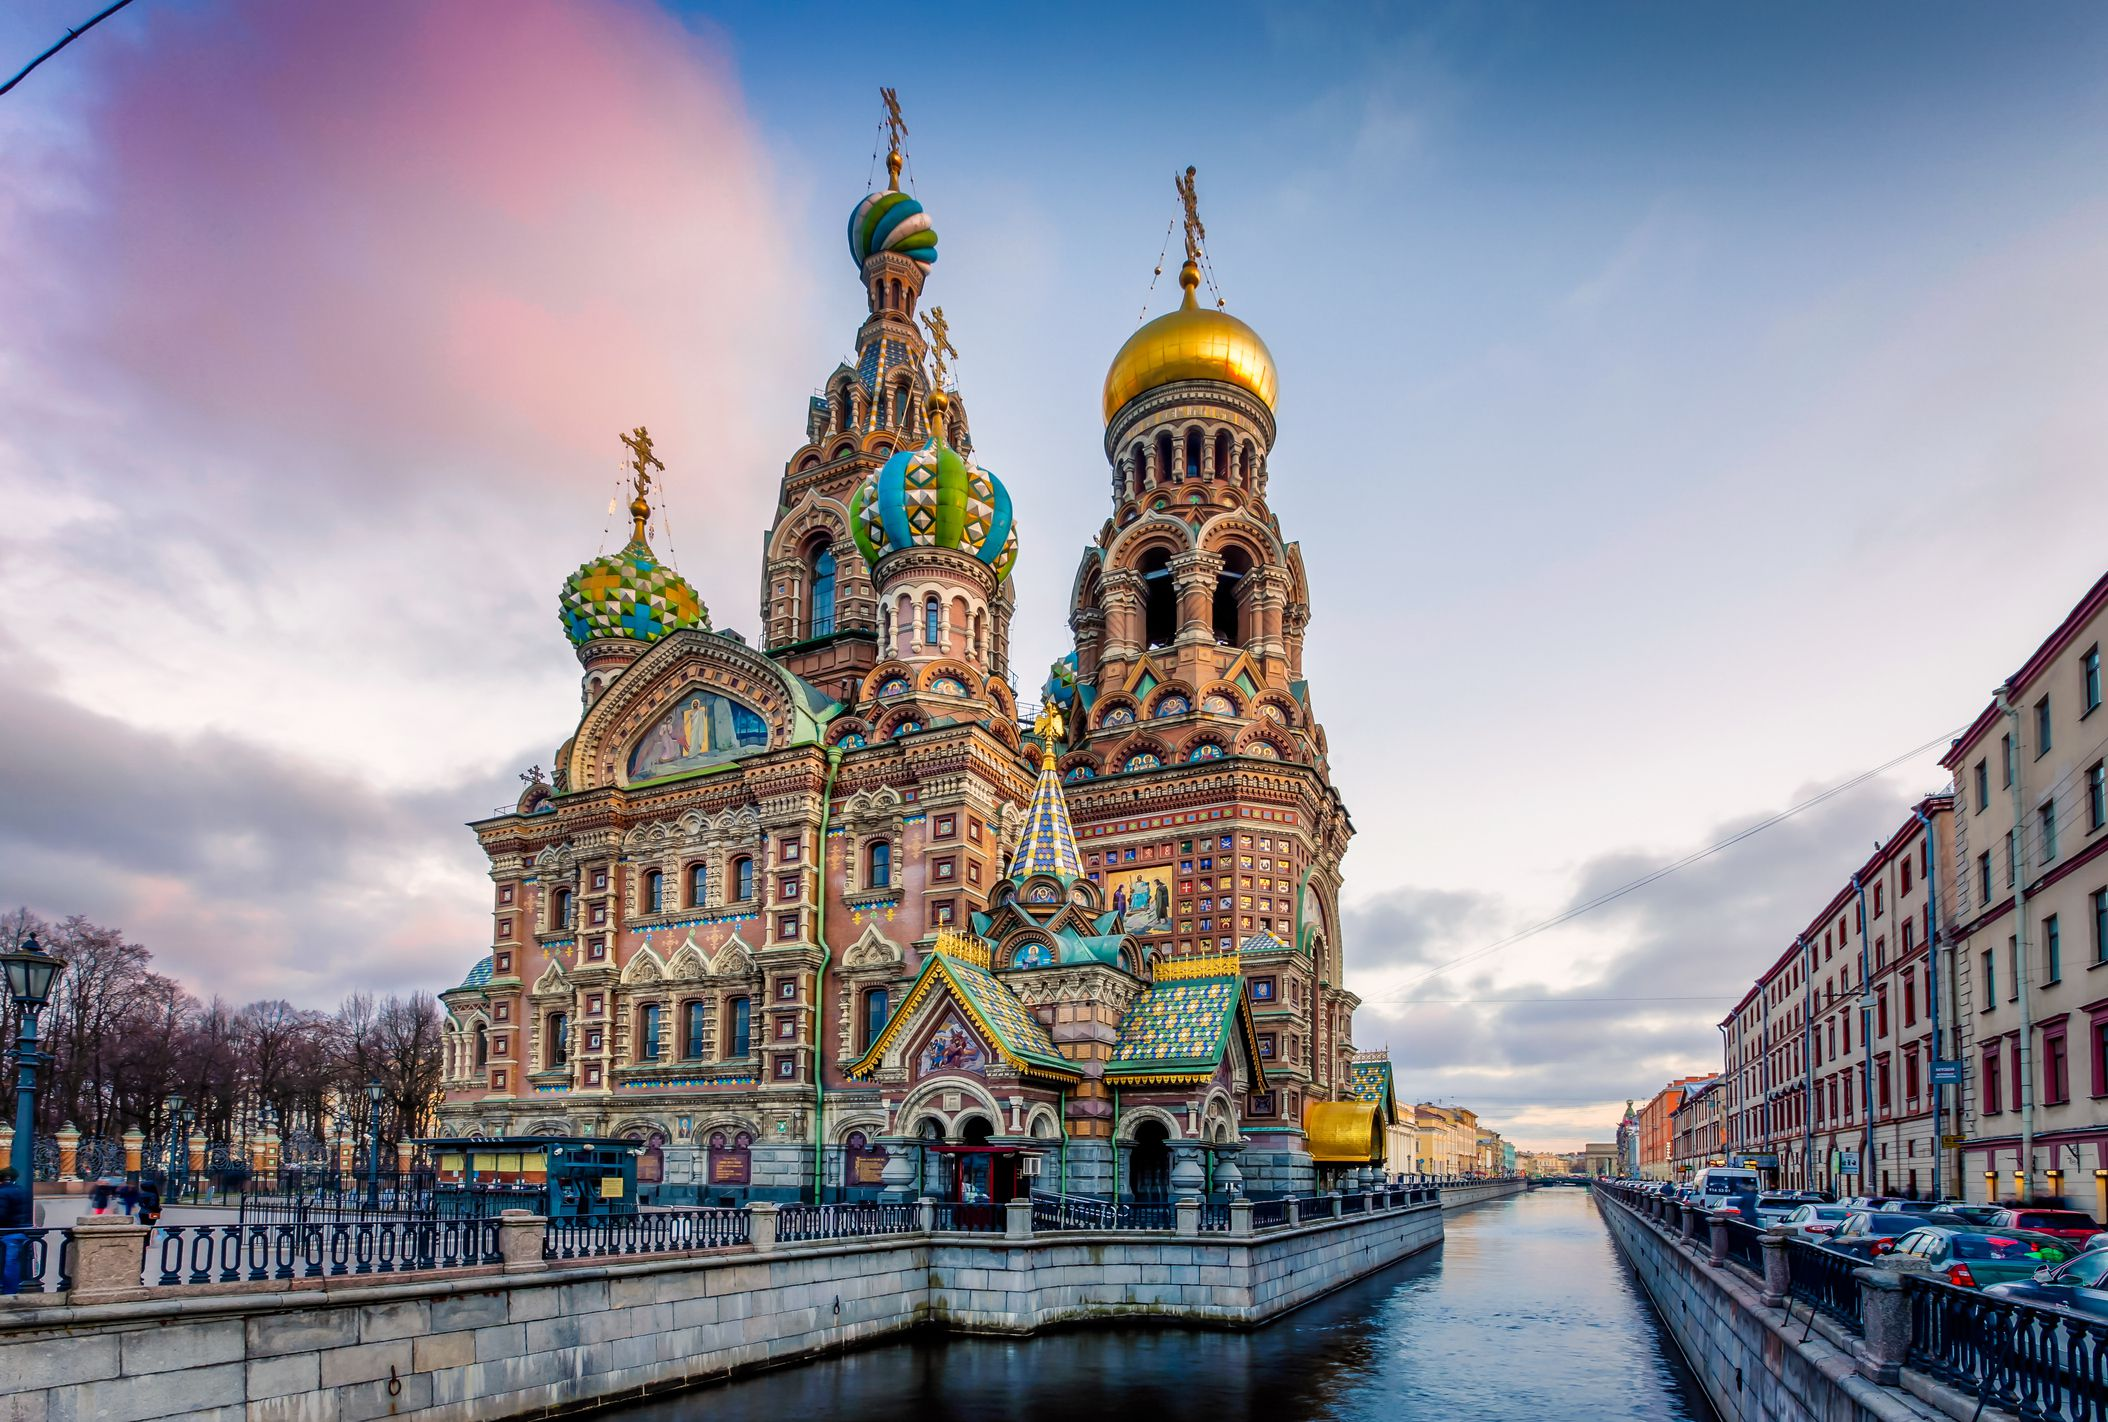 St. Petersburg, Russia's Window to the West